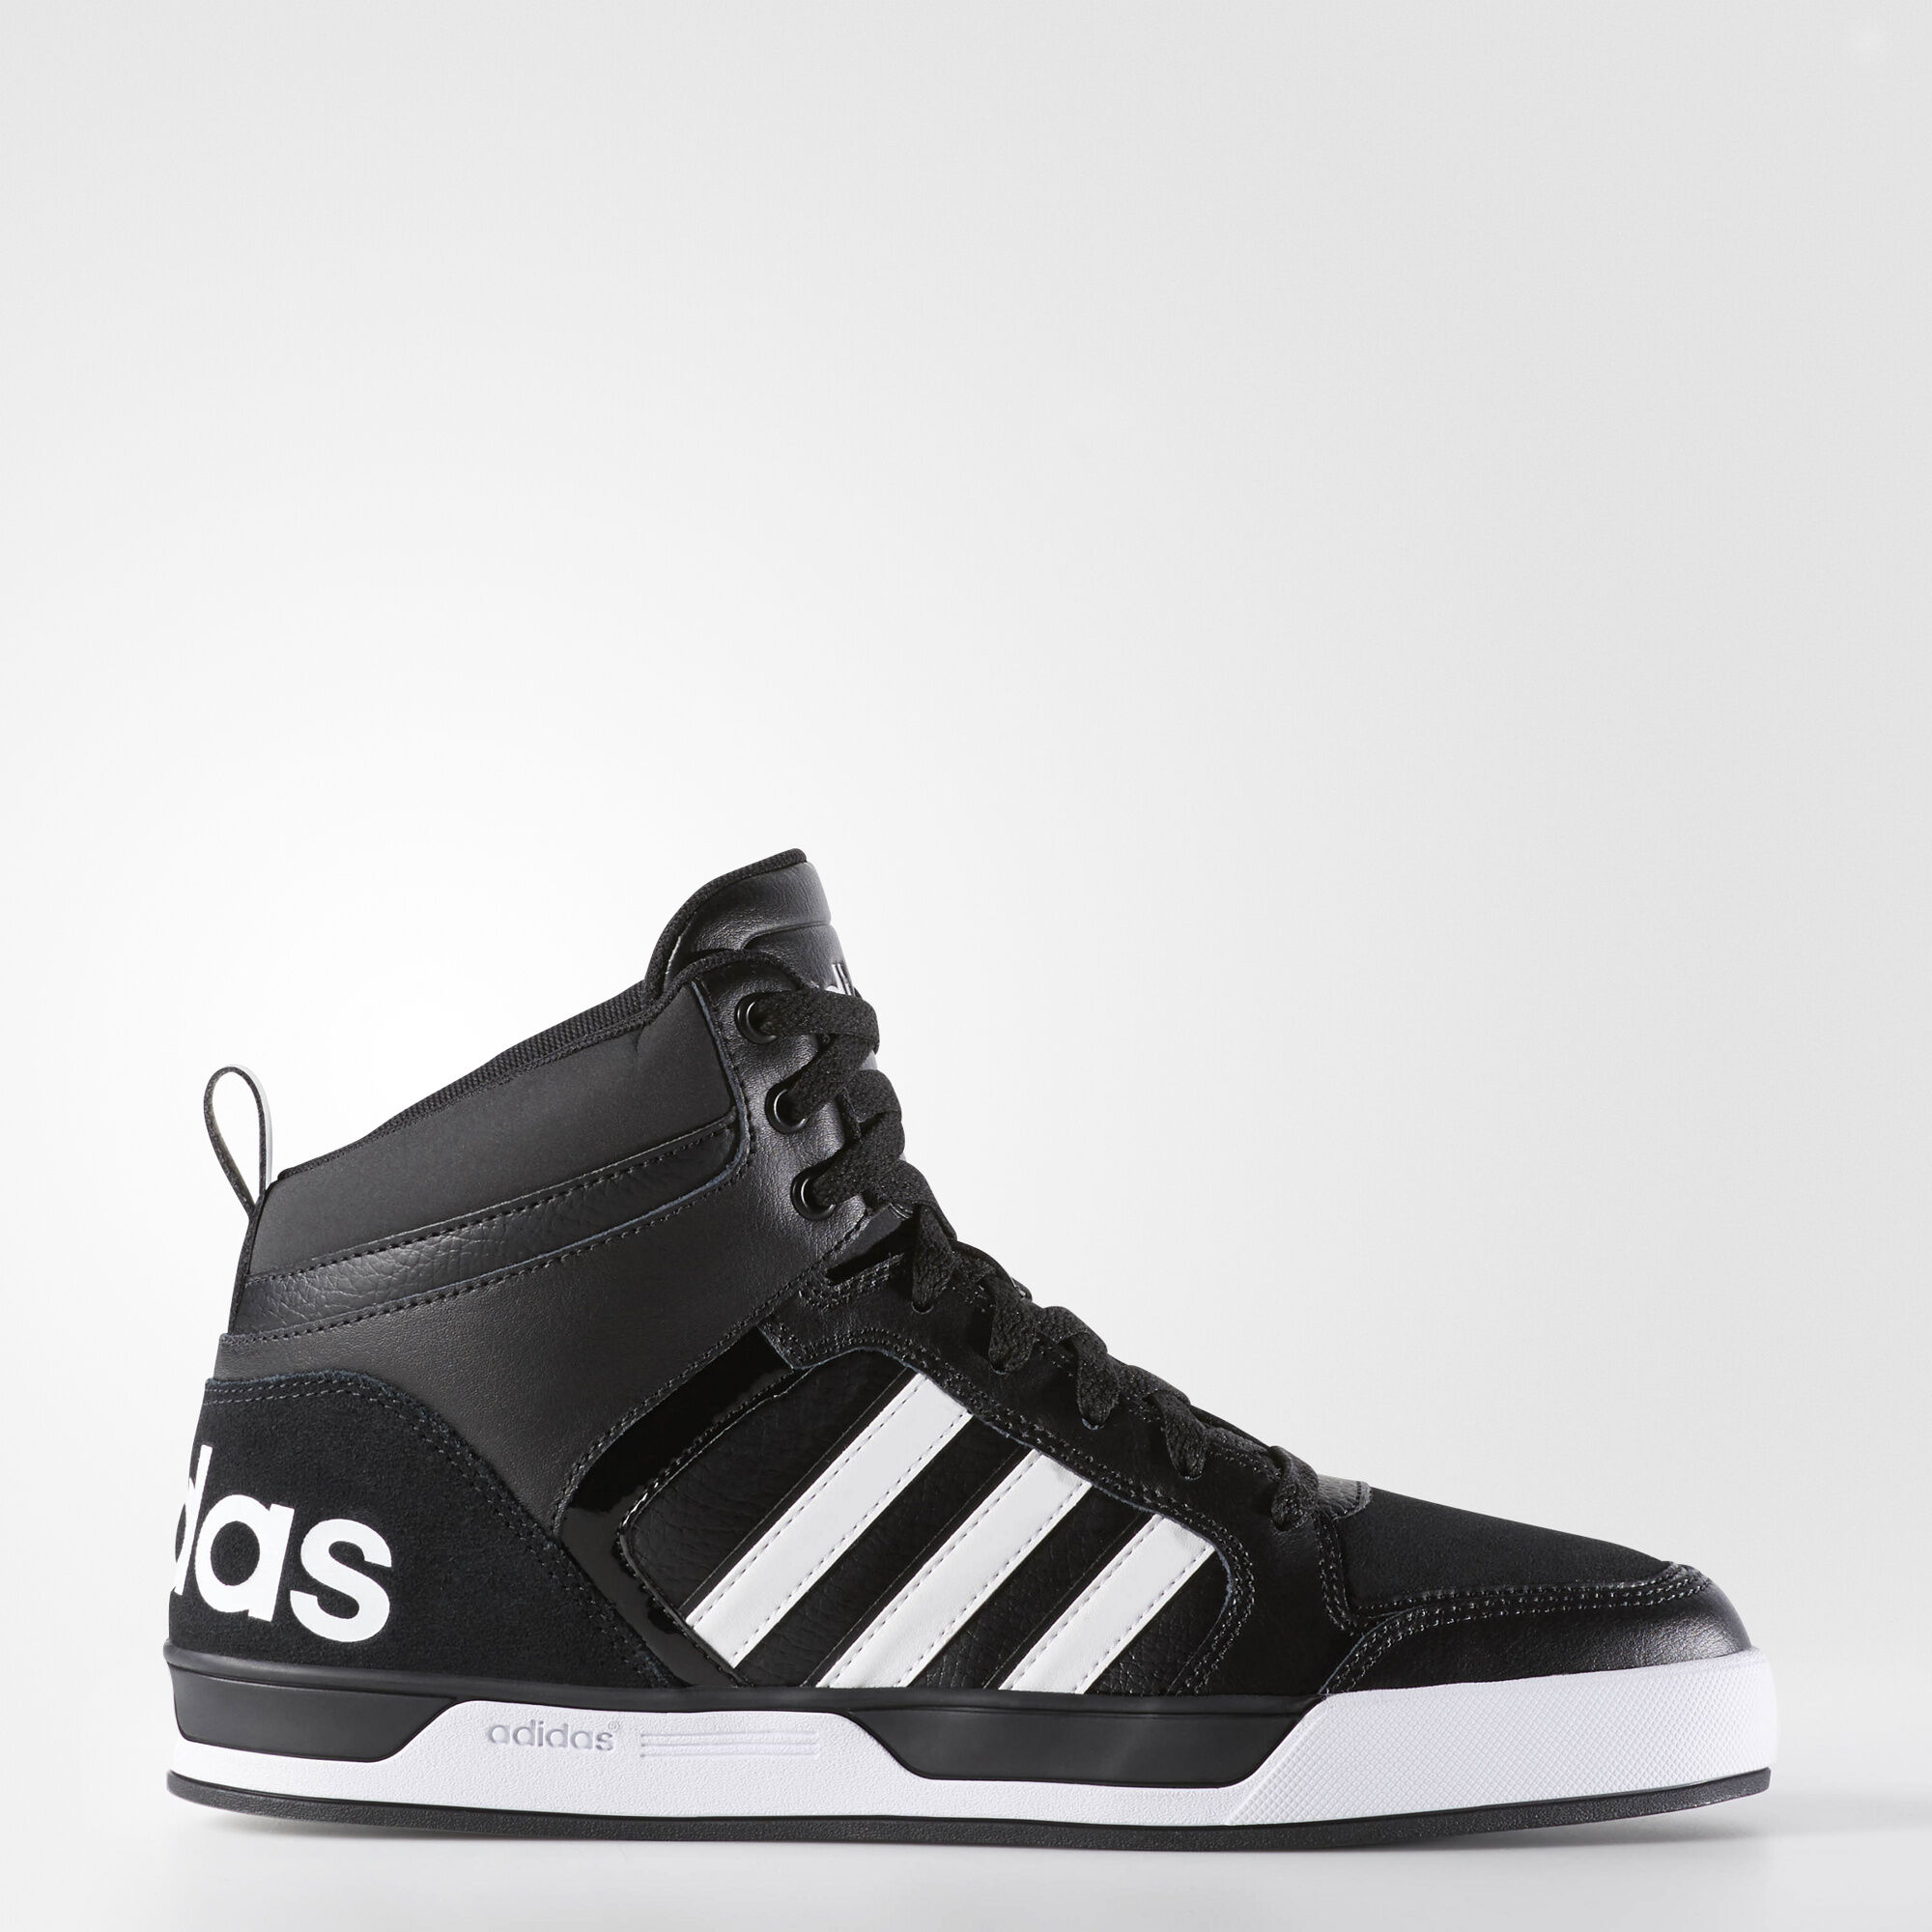 adidas sneaker neo raleigh adidas high top sneaker mens, 19045 adidas basketball shoes 1de24fb - hotlink.pw